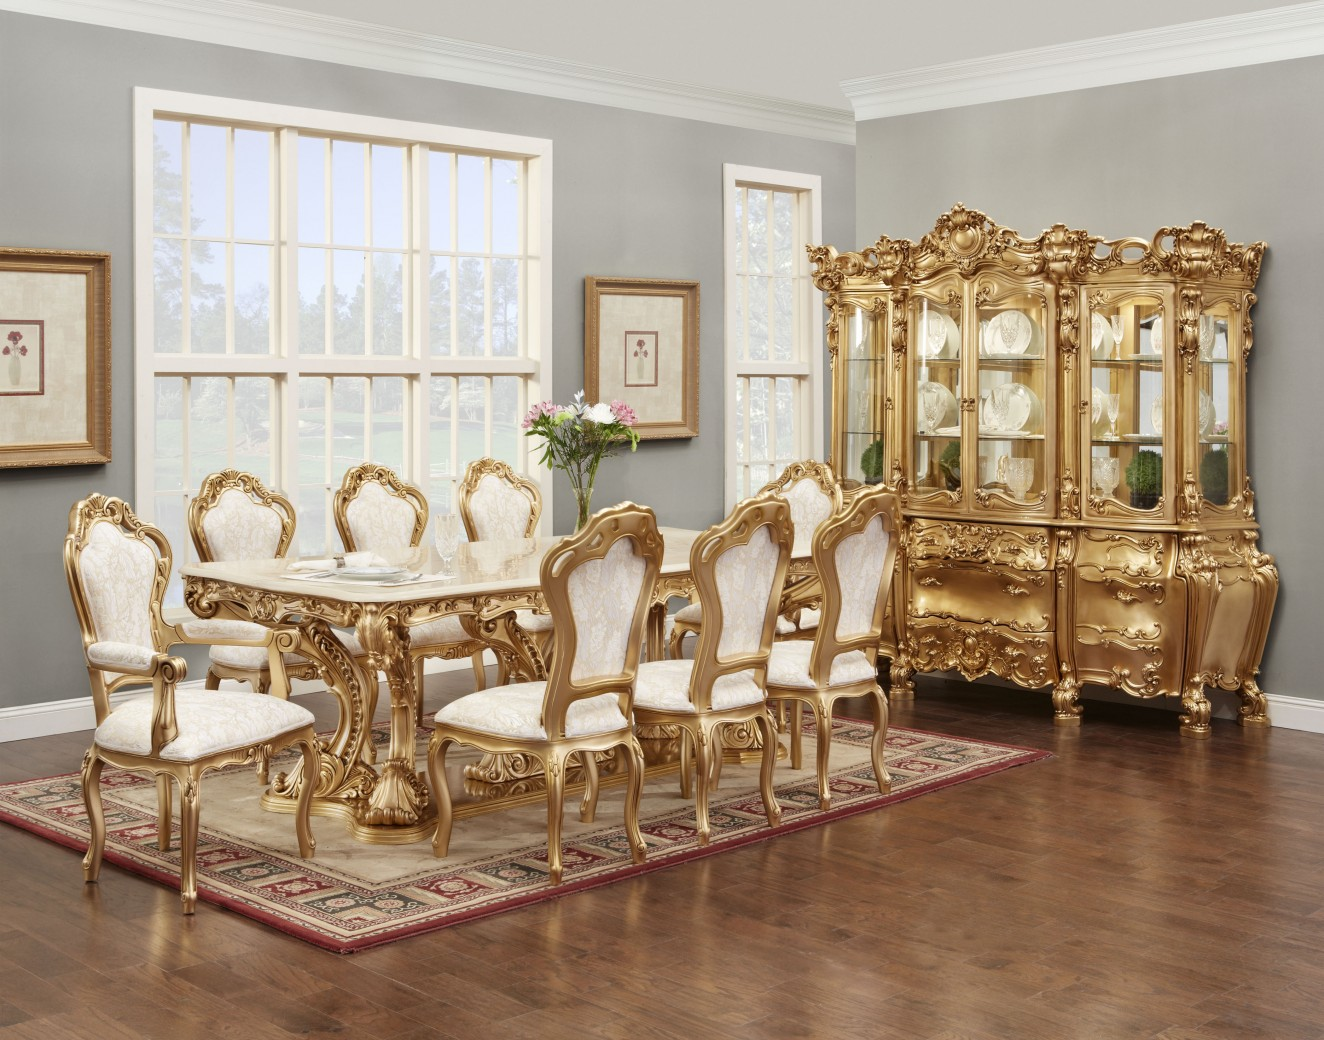 701am Marble Top Dining Table Classic, White French Provincial Dining Room Set